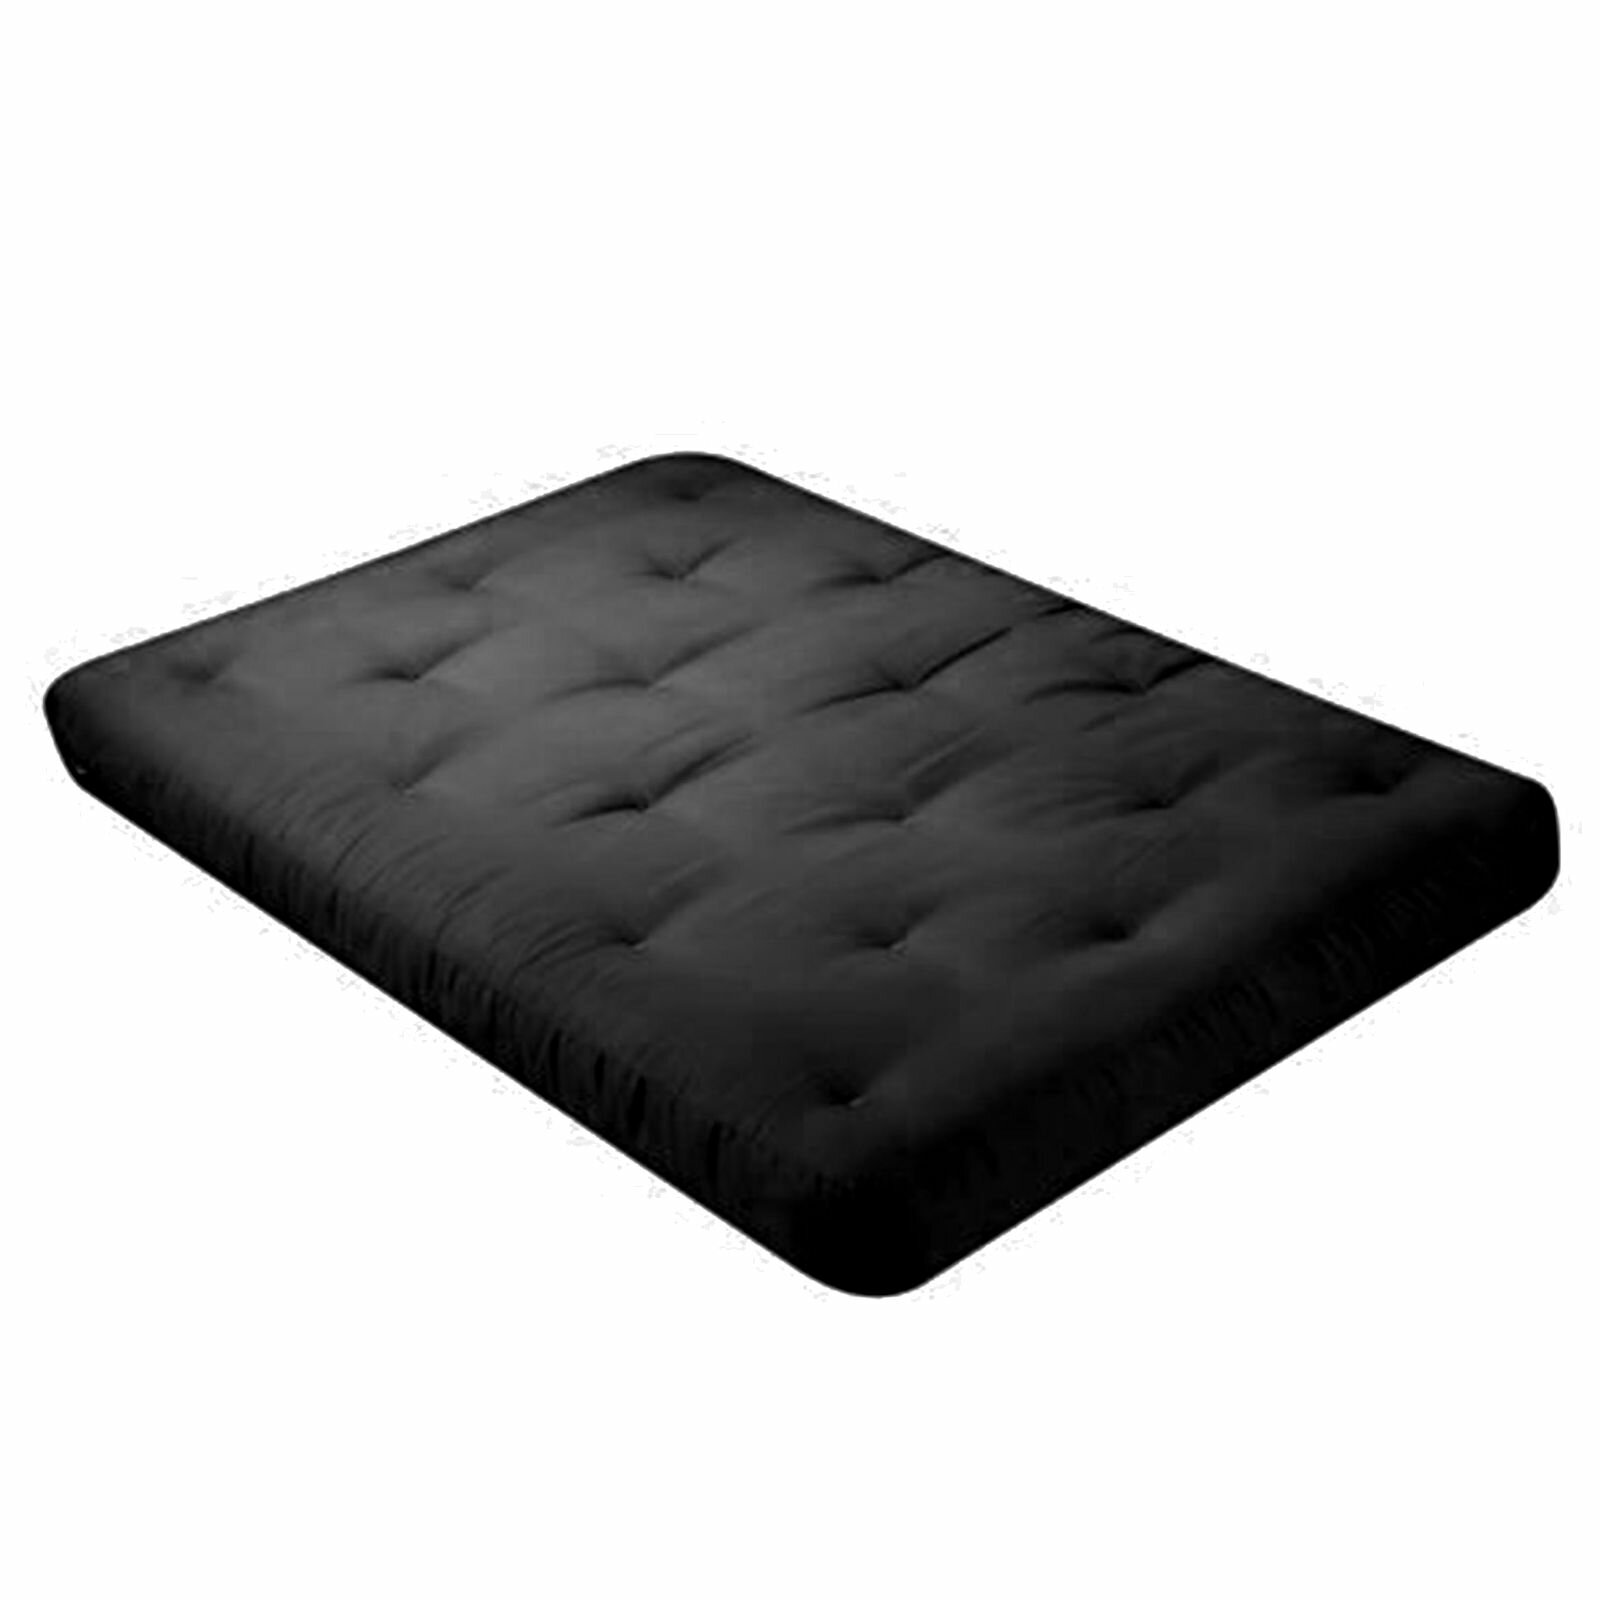 Lakeland Mills Cushion Futon Mattress & Reviews